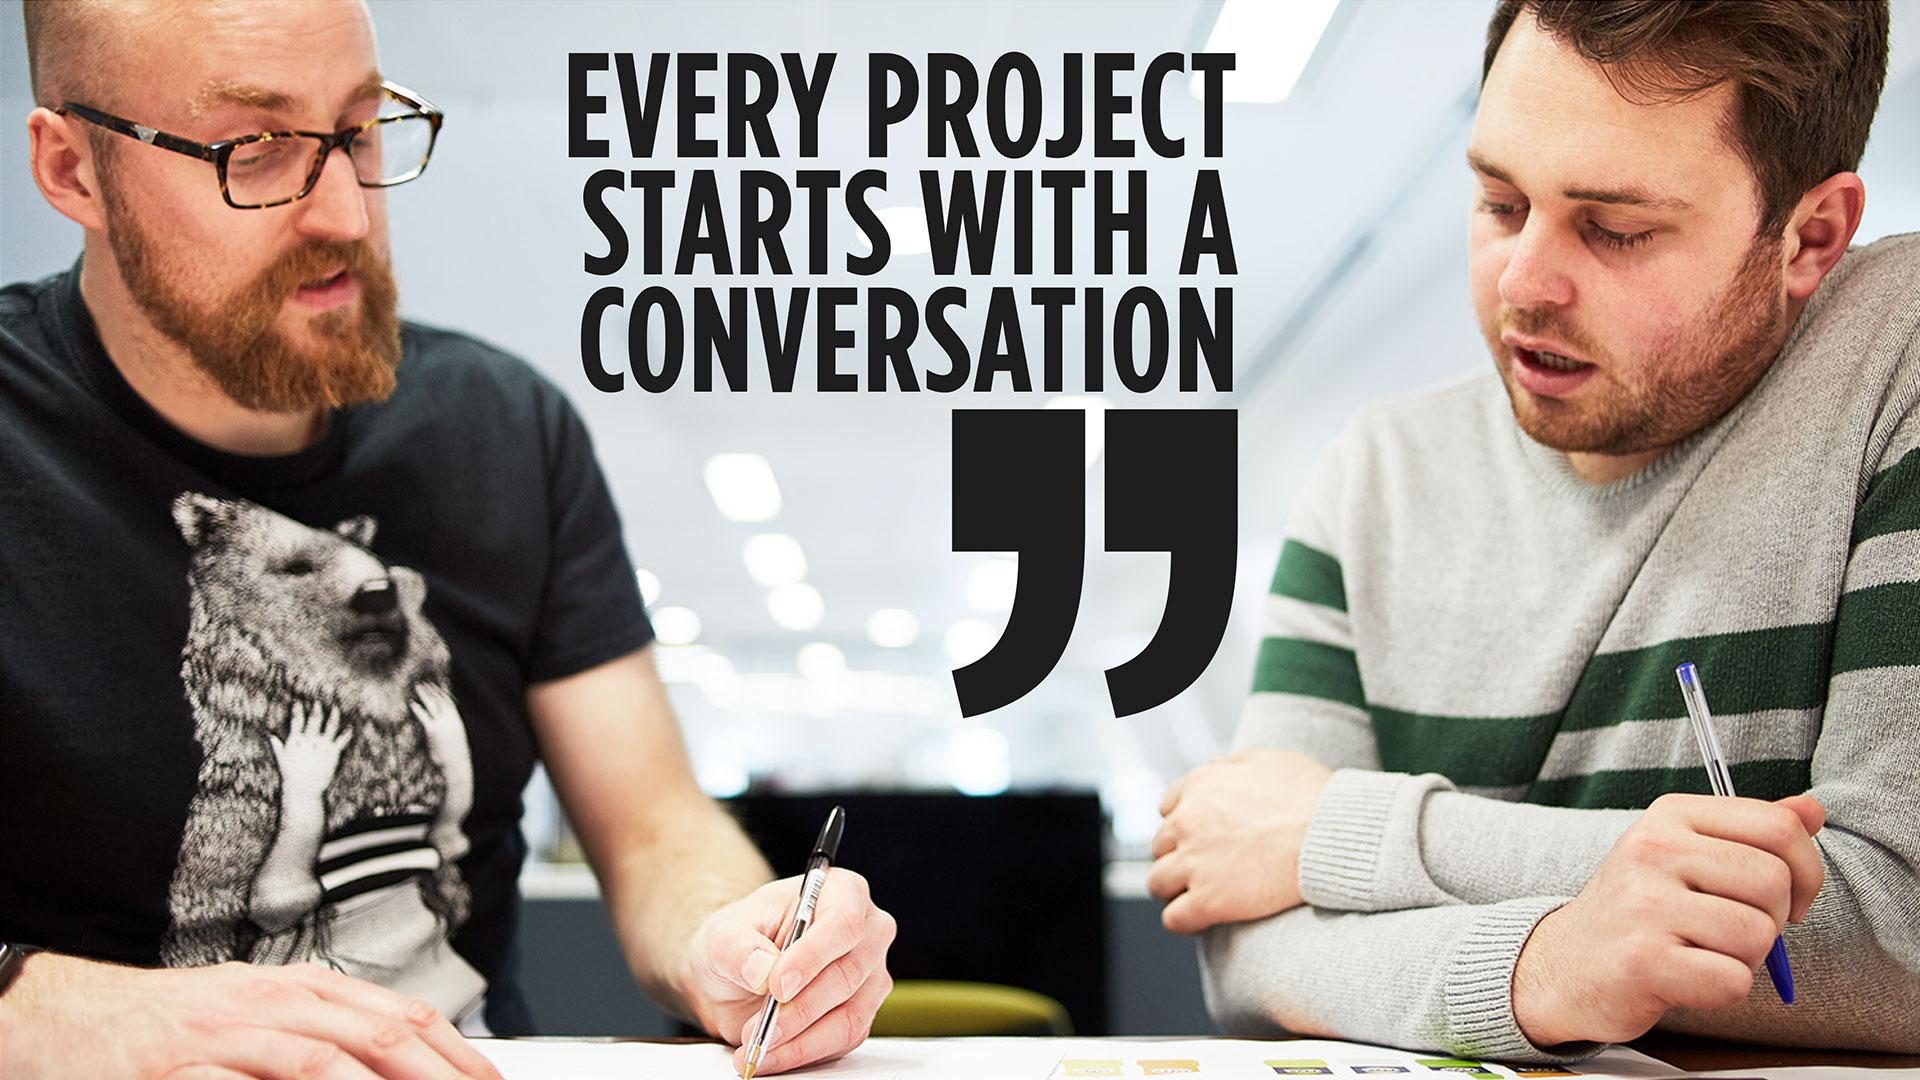 EVERY PROJECT STARTS WITH A CONVERSATION